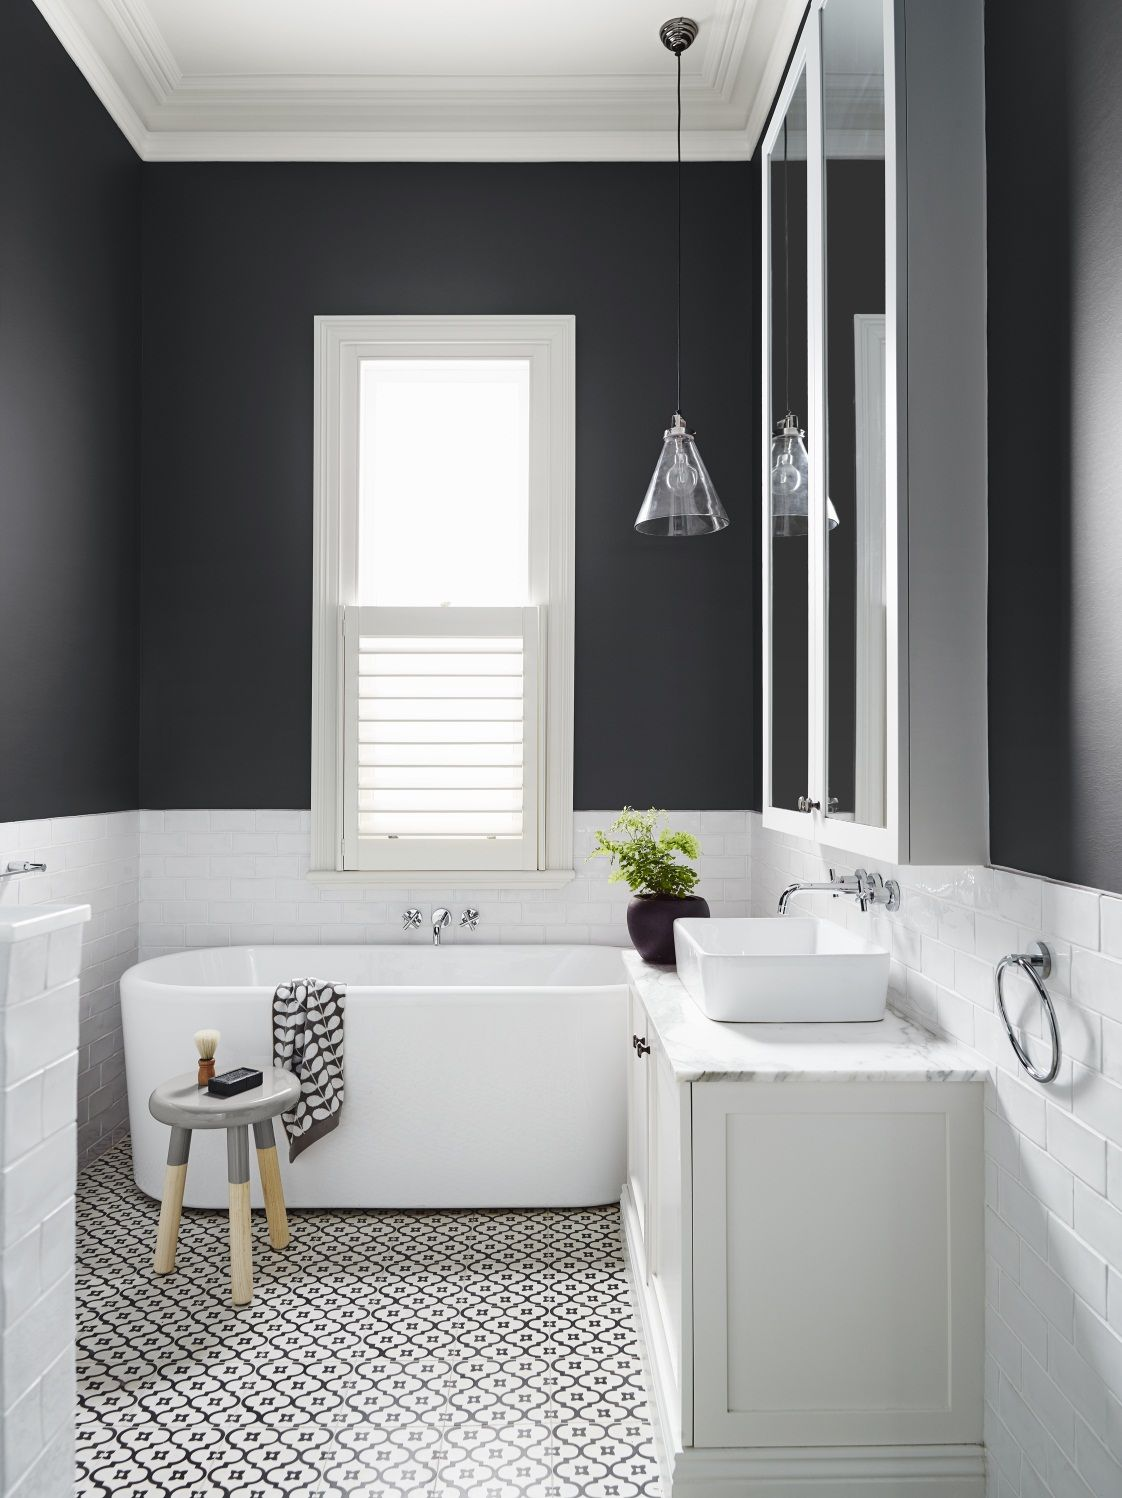 Beautiful And Modern Black White Bathroom With Subway Tiles From Dulux Colour Gallery Love The Detailing On Floor